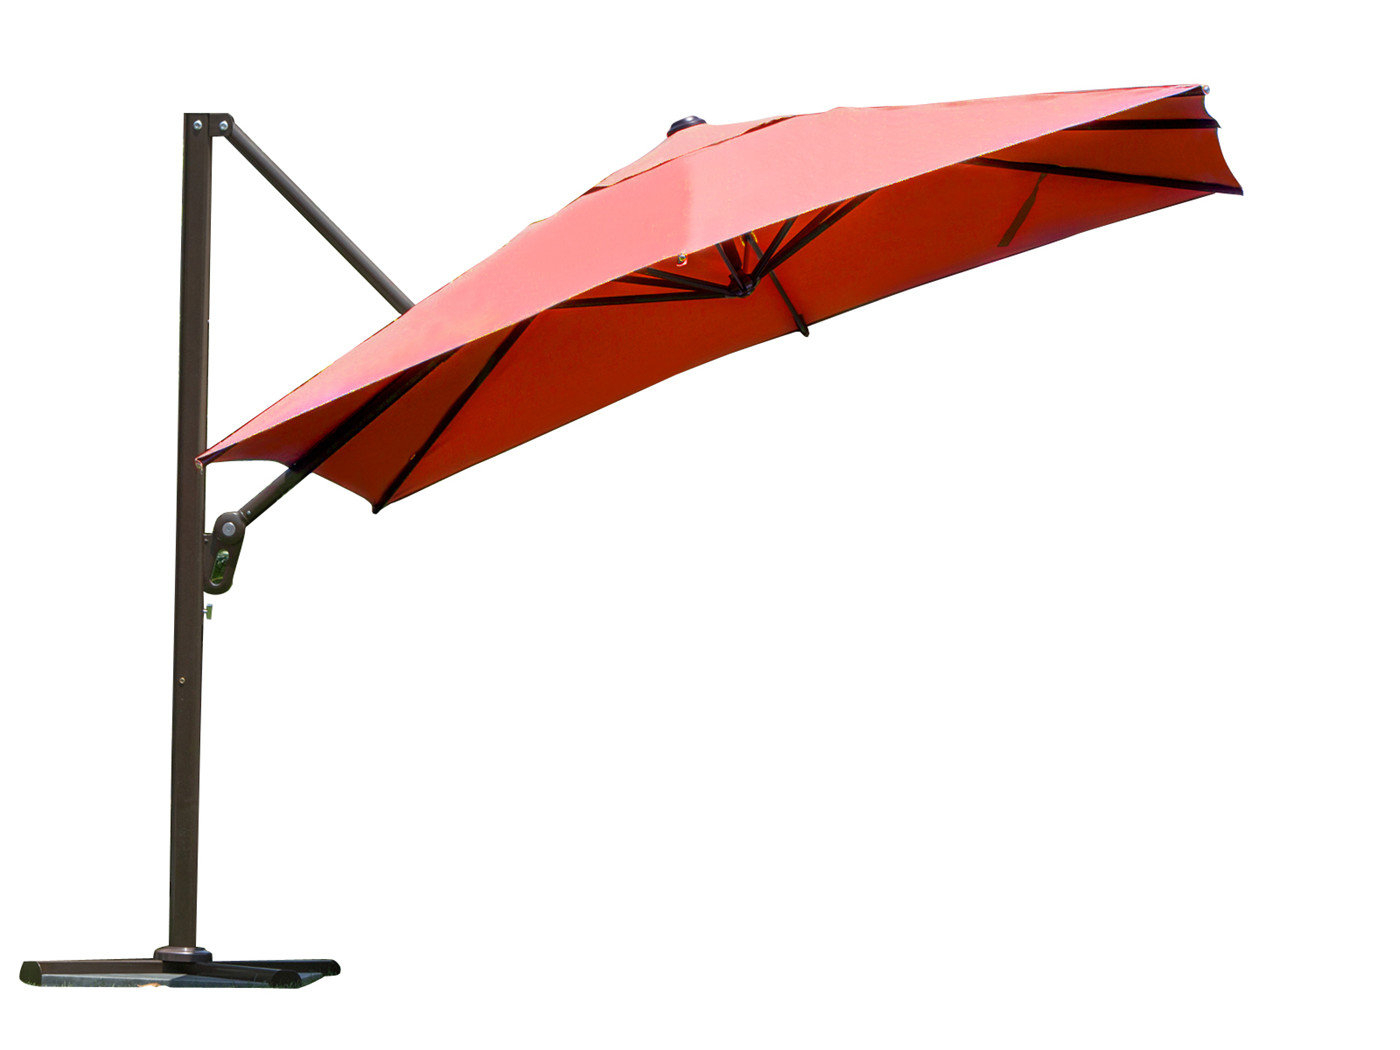 2019 9' Square Cantilever Umbrella Throughout Windell Square Cantilever Umbrellas (View 3 of 20)